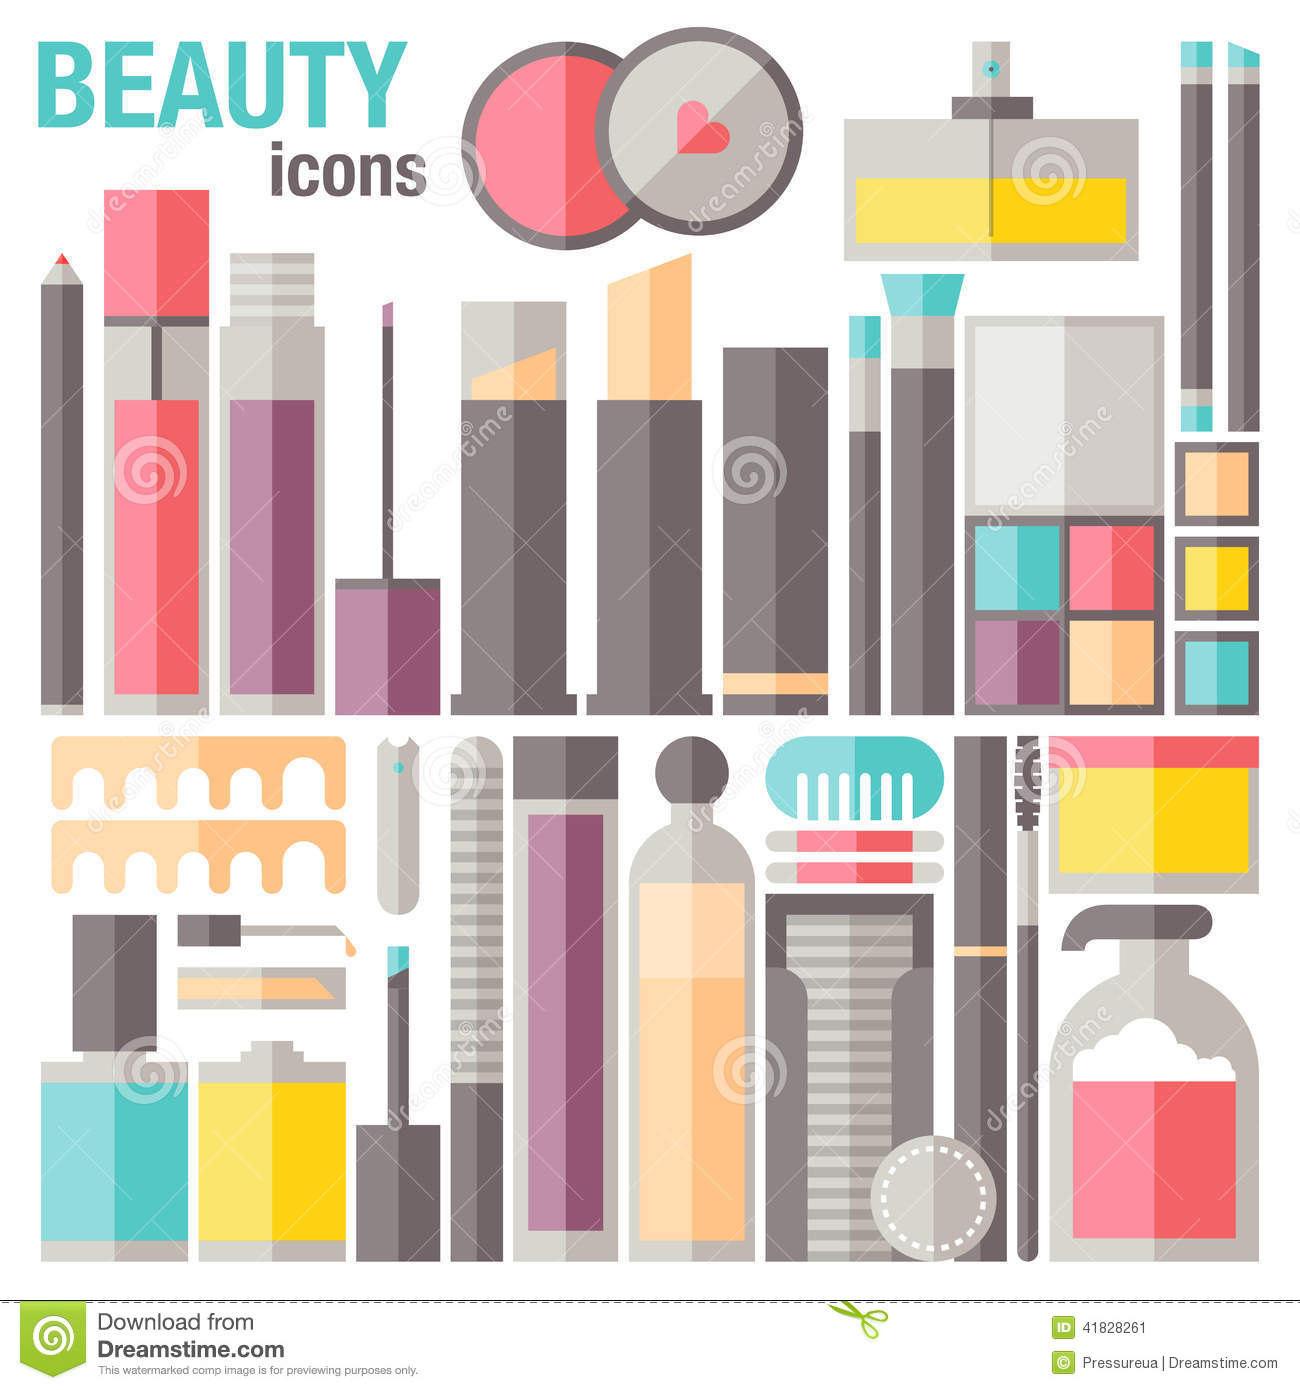 care beauty skin makeup flat icons clip cosmetic common professional accessories different object vector 1300 1390